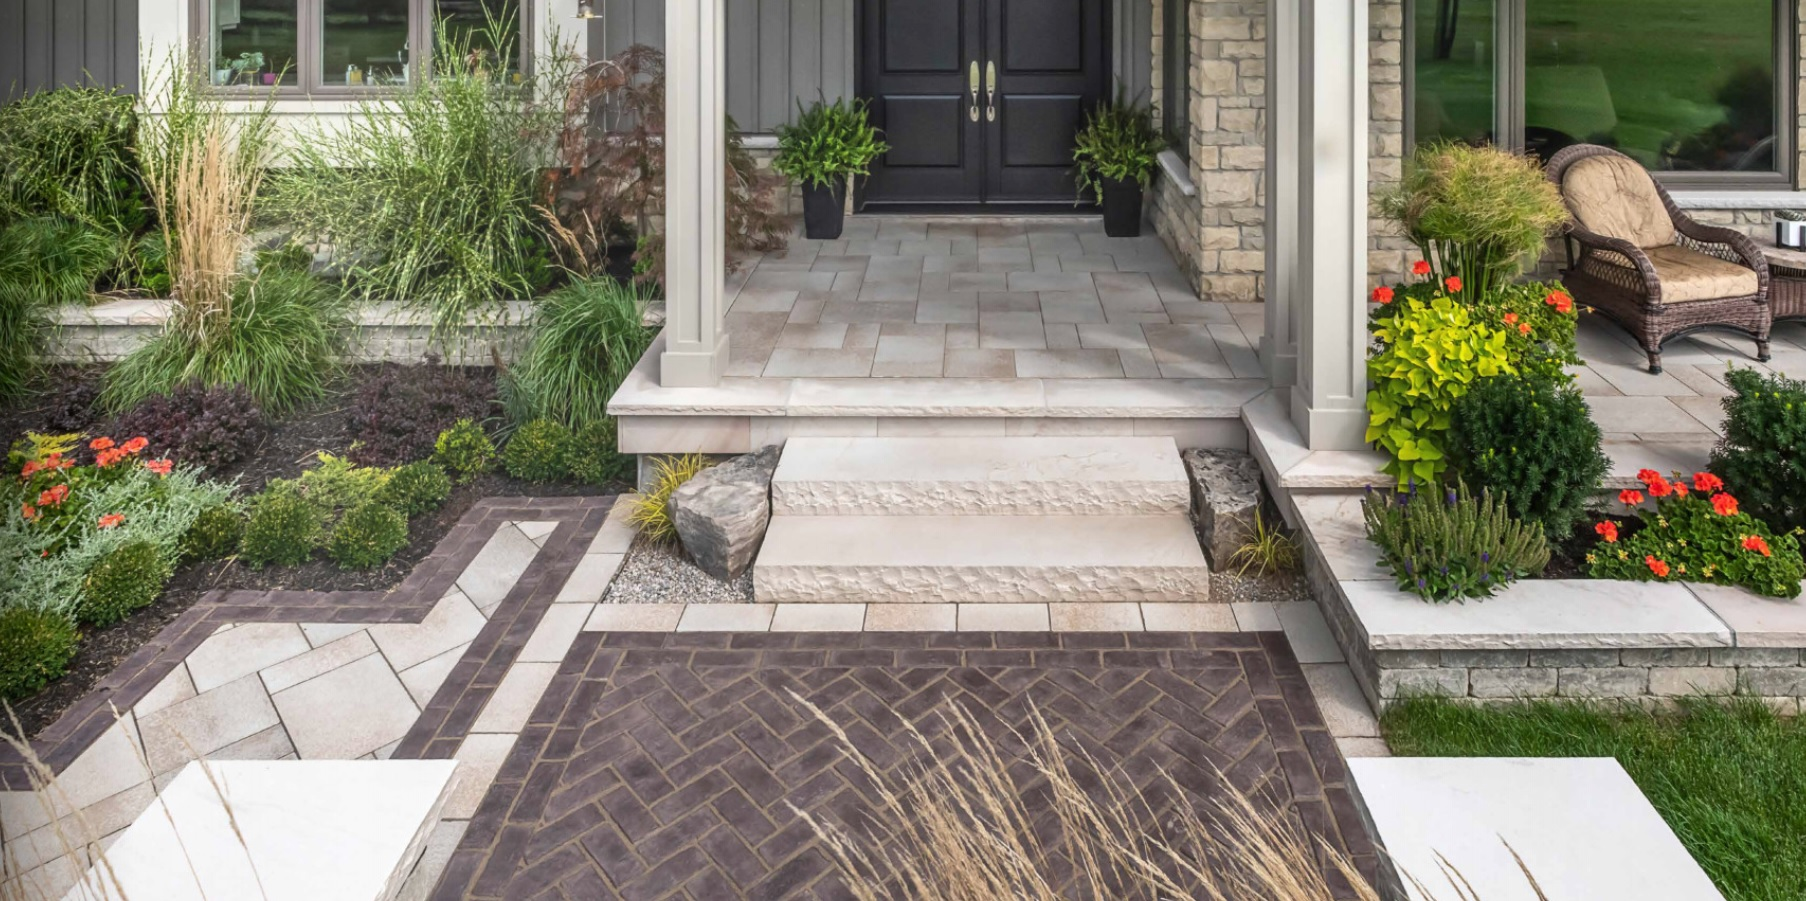 Landscaping companies with top lawn service in Rochester Hills, MI